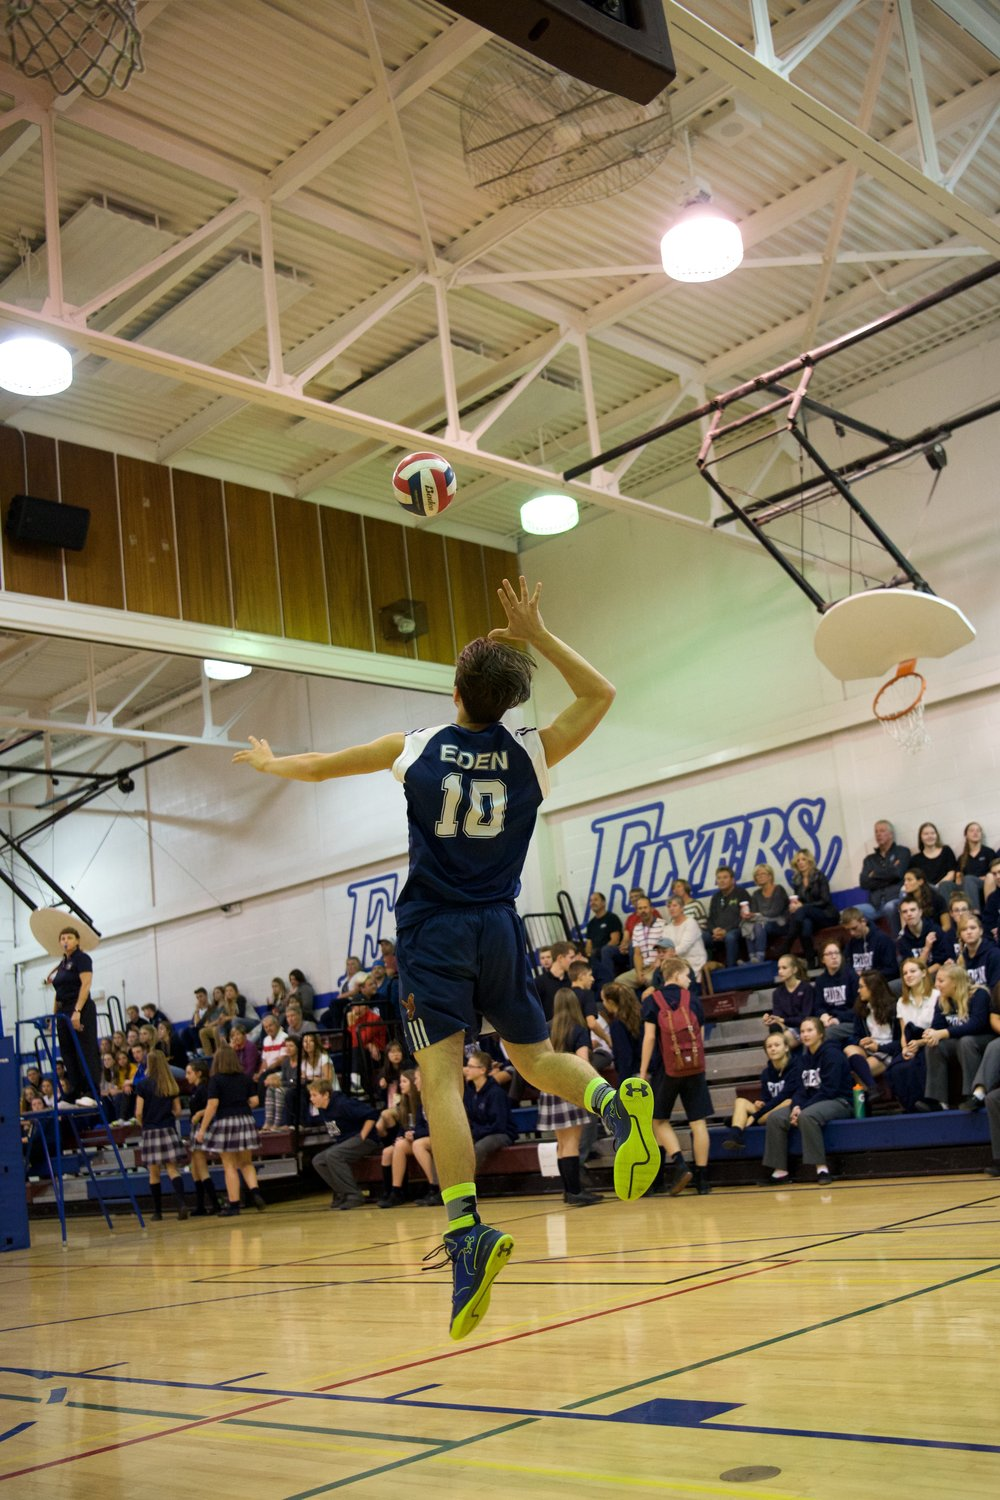 2016---boys-volleyball---sossa---3_31083258845_o - Copy.jpg